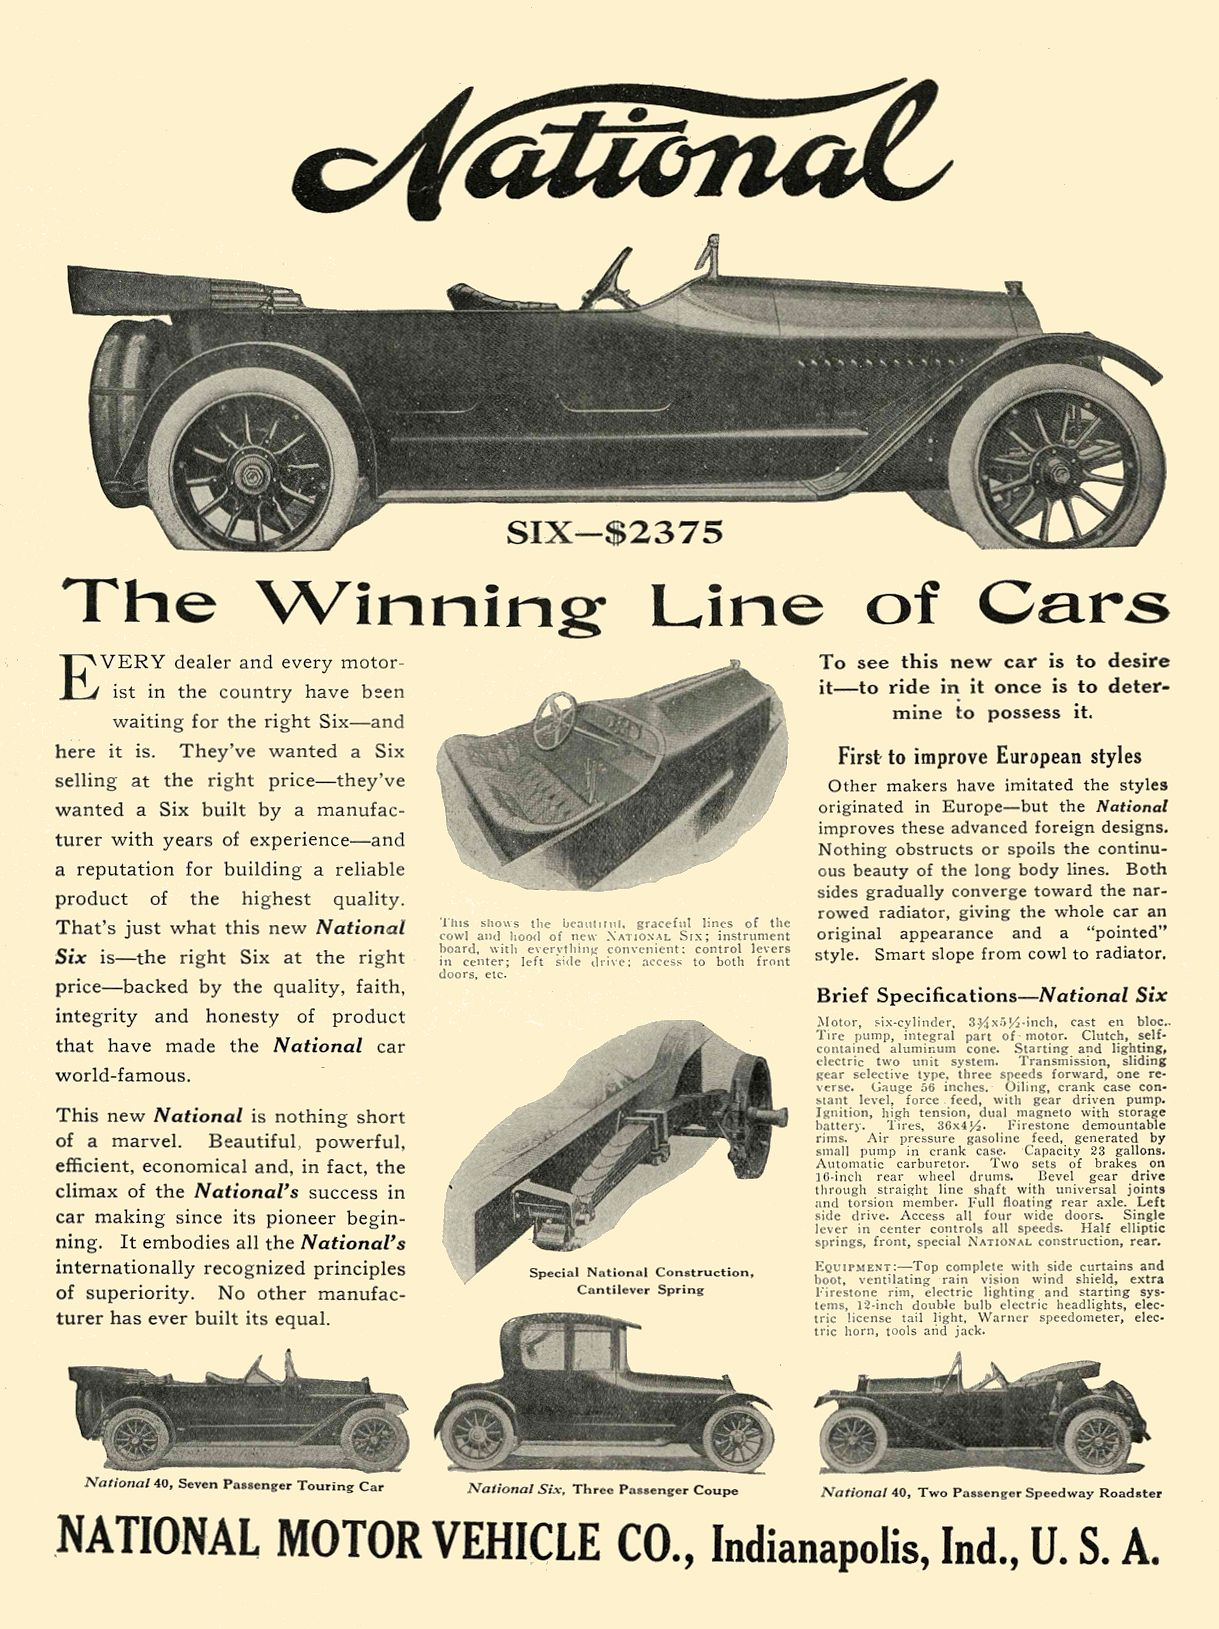 1914 2 25 NATIONAL The Winning Line of Cars NATIONAL MOTOR VEHICLE CO. Indianapolis, IND THE HORSELESS AGE February 25, 1914 8.5″x12″ Inside cover